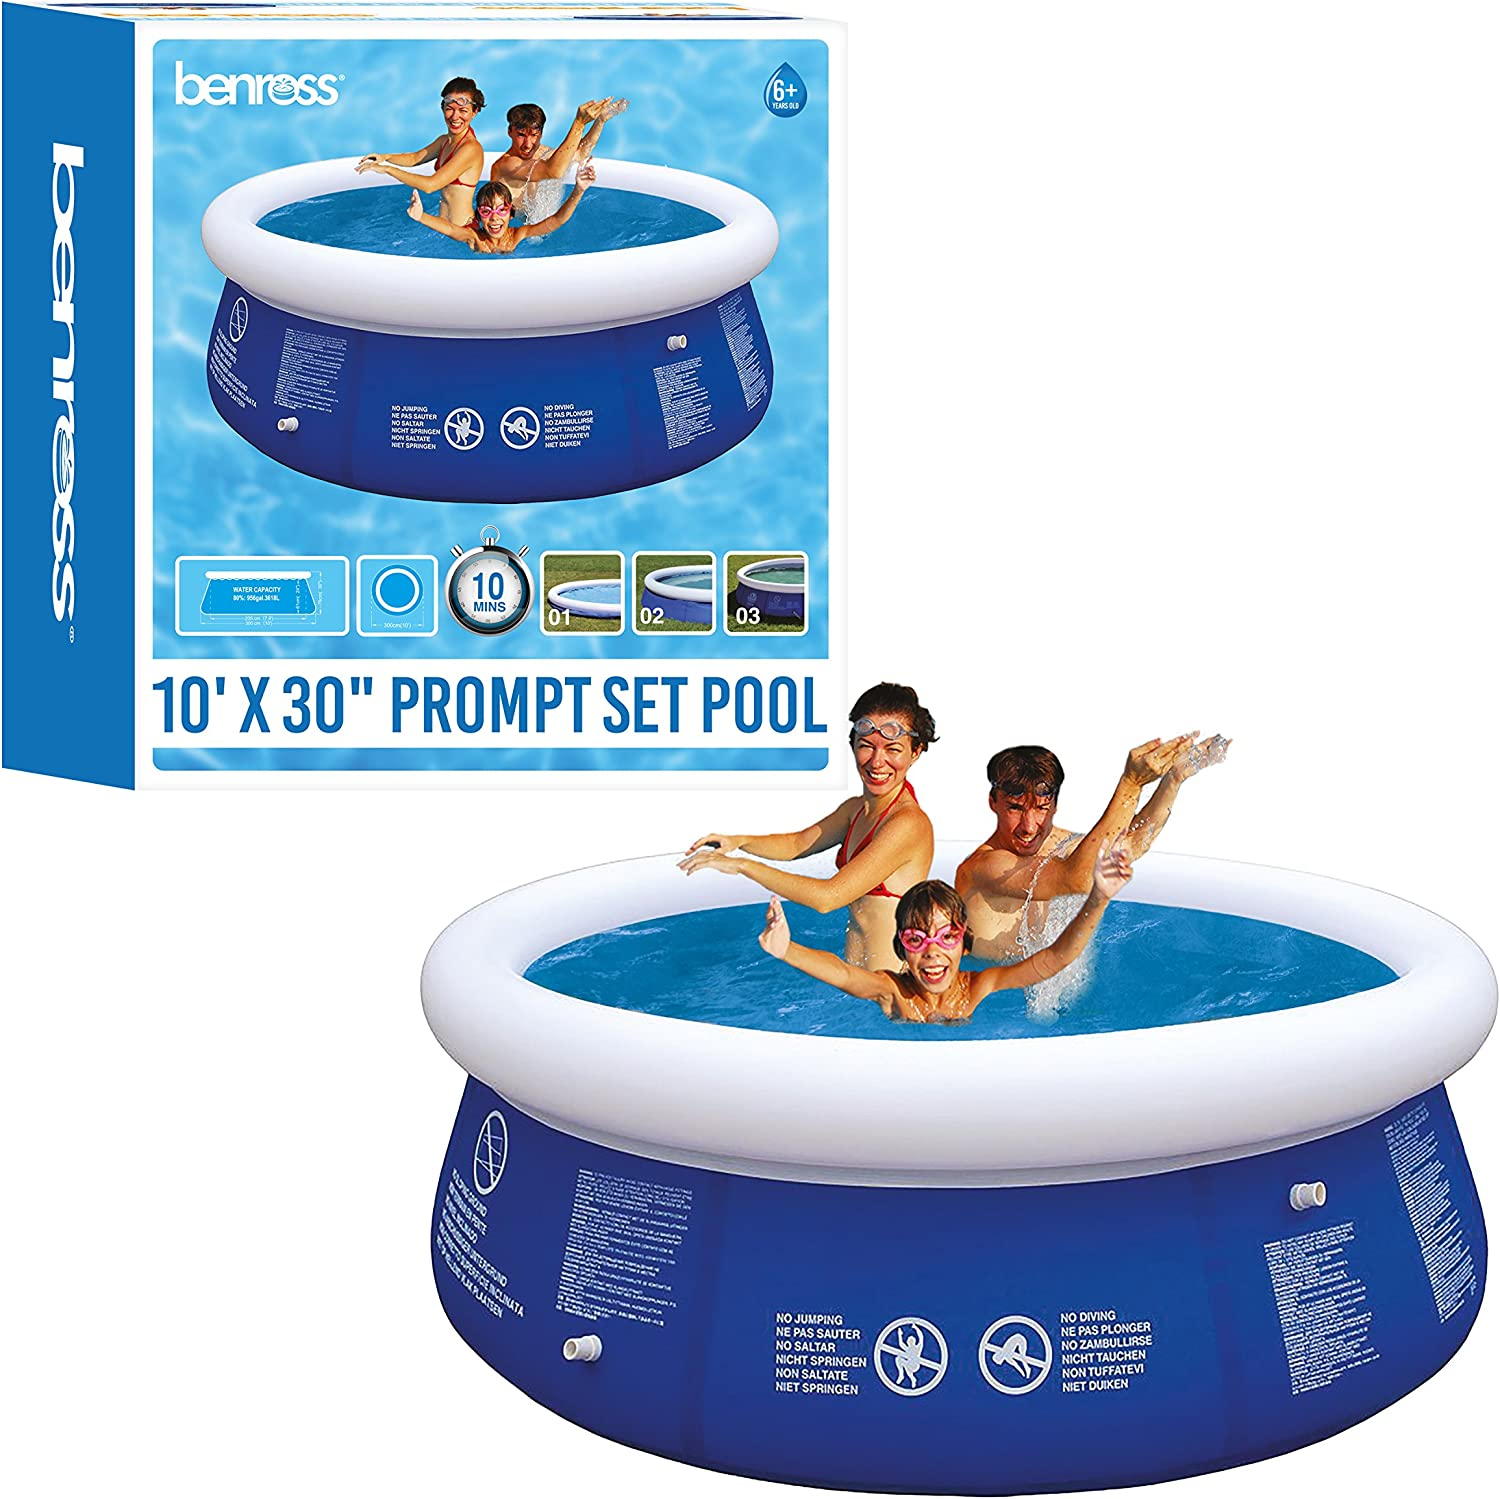 Benross 84880 10ft Garden Round Inflatable Prompt Set Swimming Pool (Extra Large), bluee